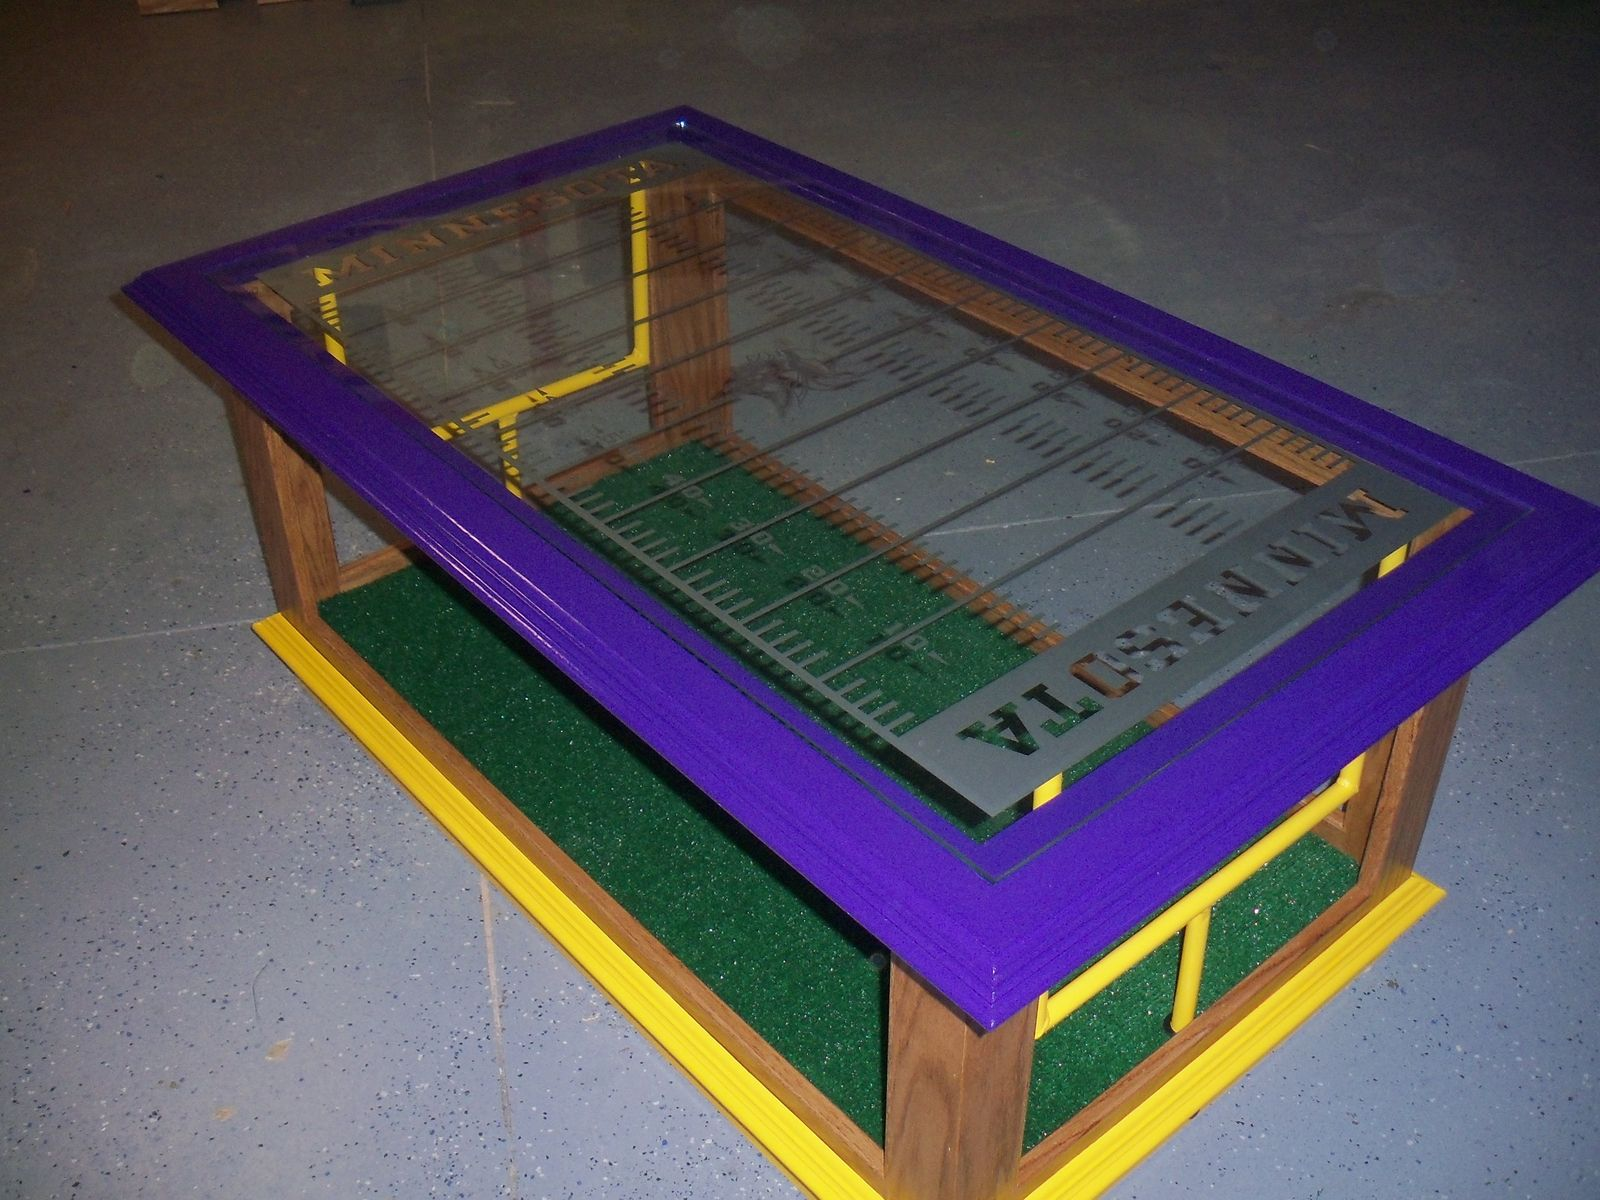 custom nfl coffee table by woods by designs. Black Bedroom Furniture Sets. Home Design Ideas